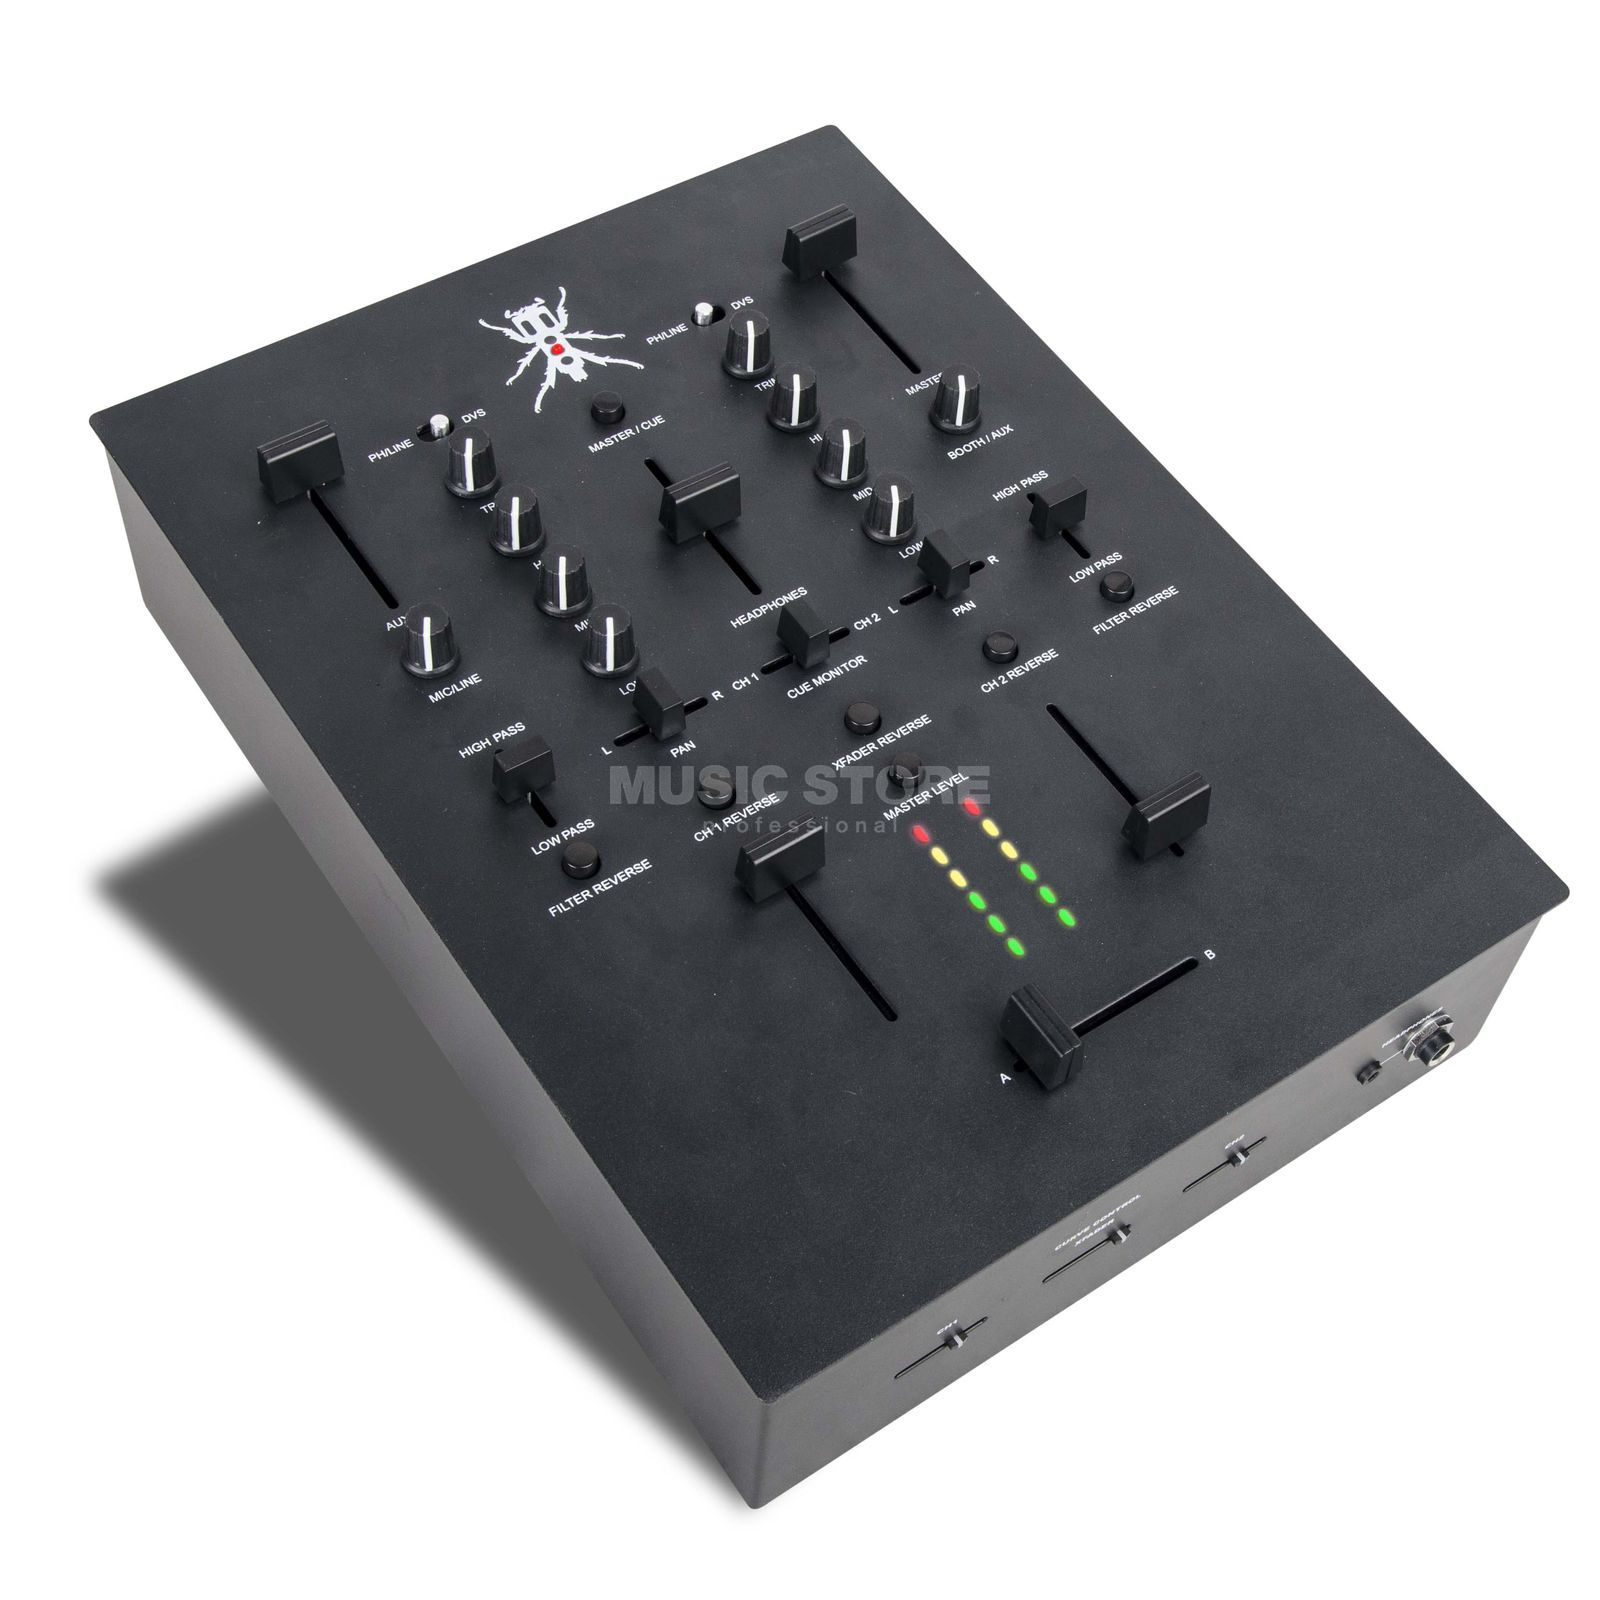 DJ-TECH TRX black Hochleistungs-Scratch-Mixer Produktbillede